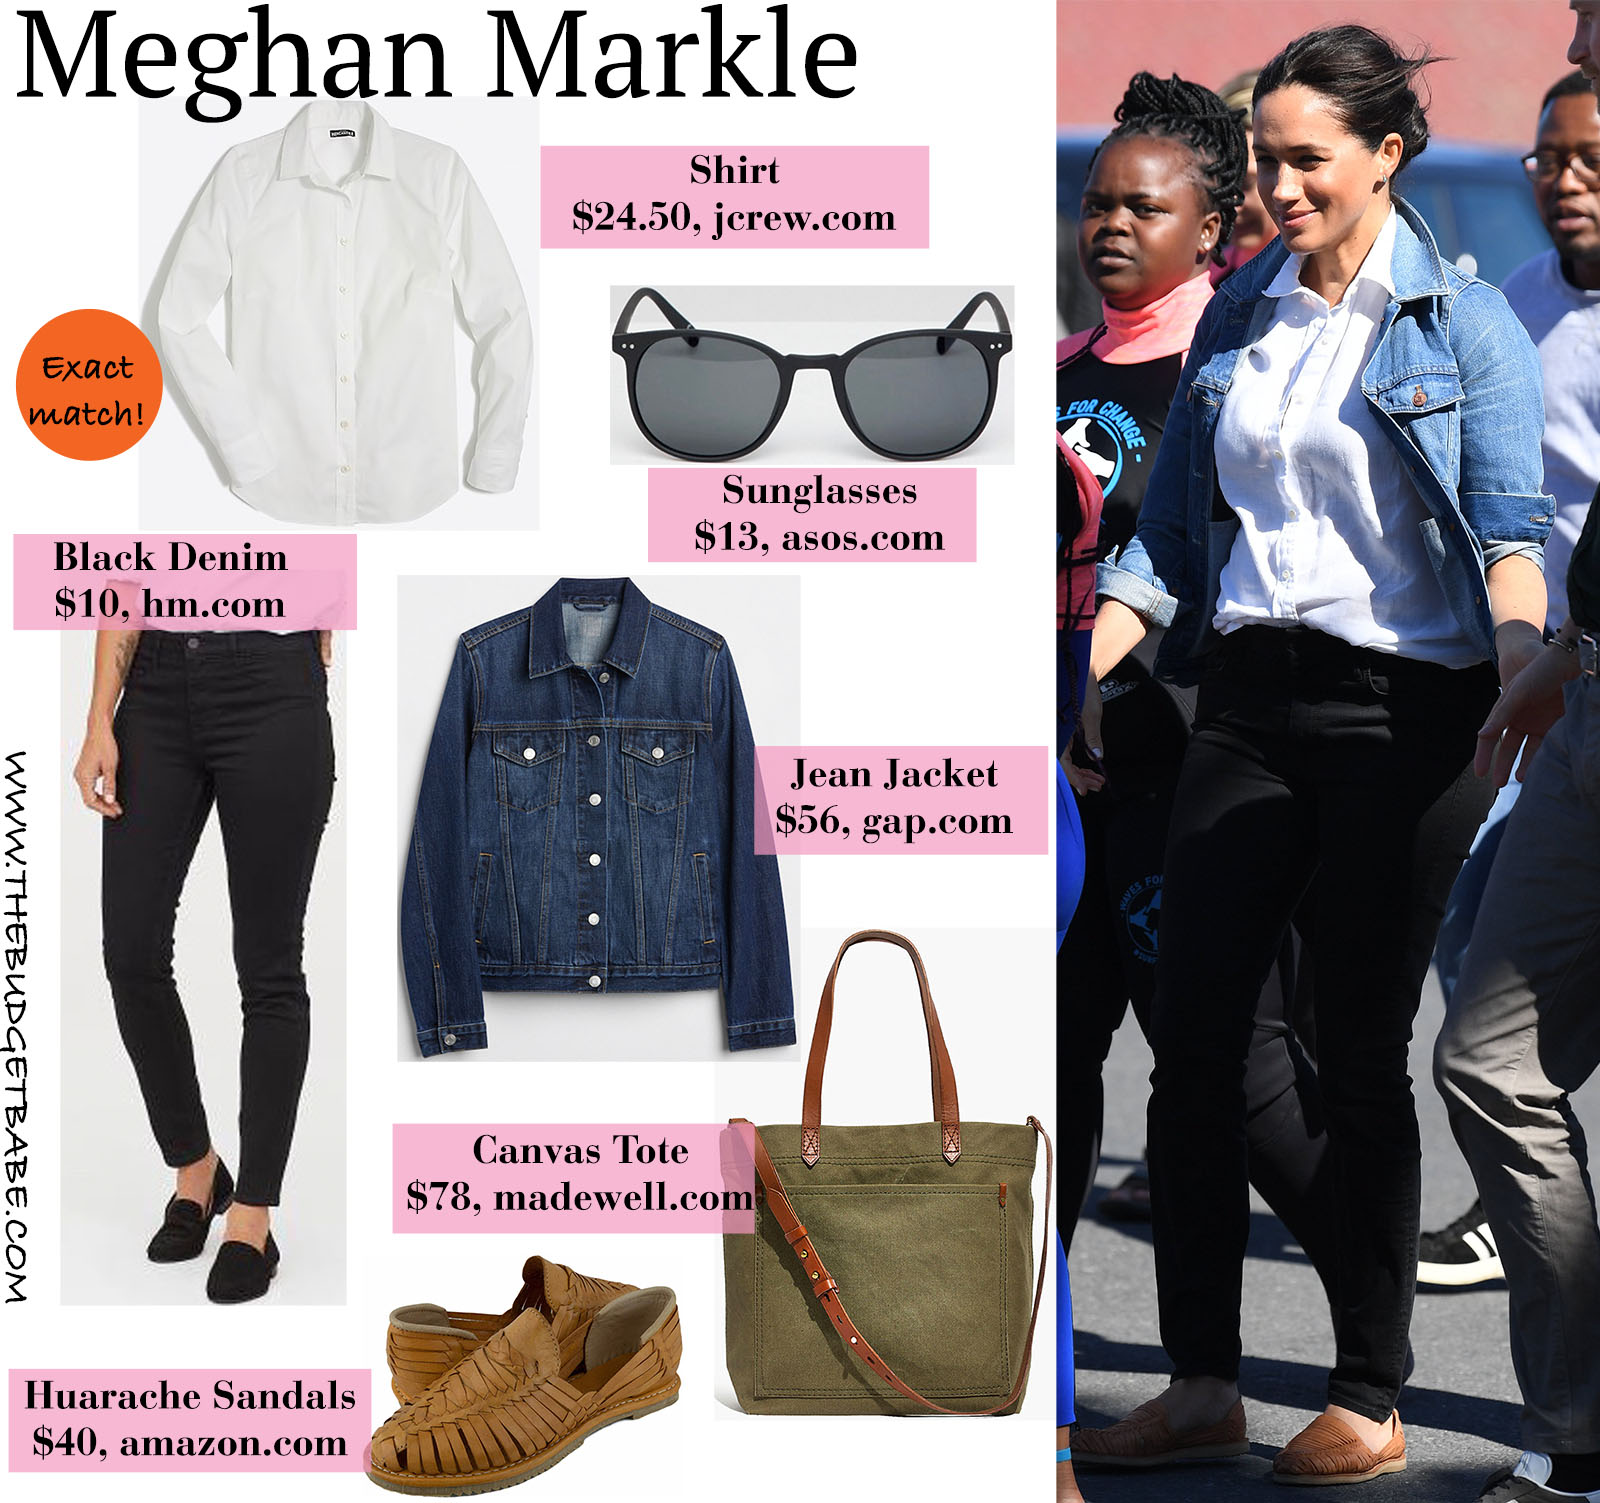 Meghan Markle is casual and chic in a jean jacket, white collared shirt, black denim, and huarache sandals.